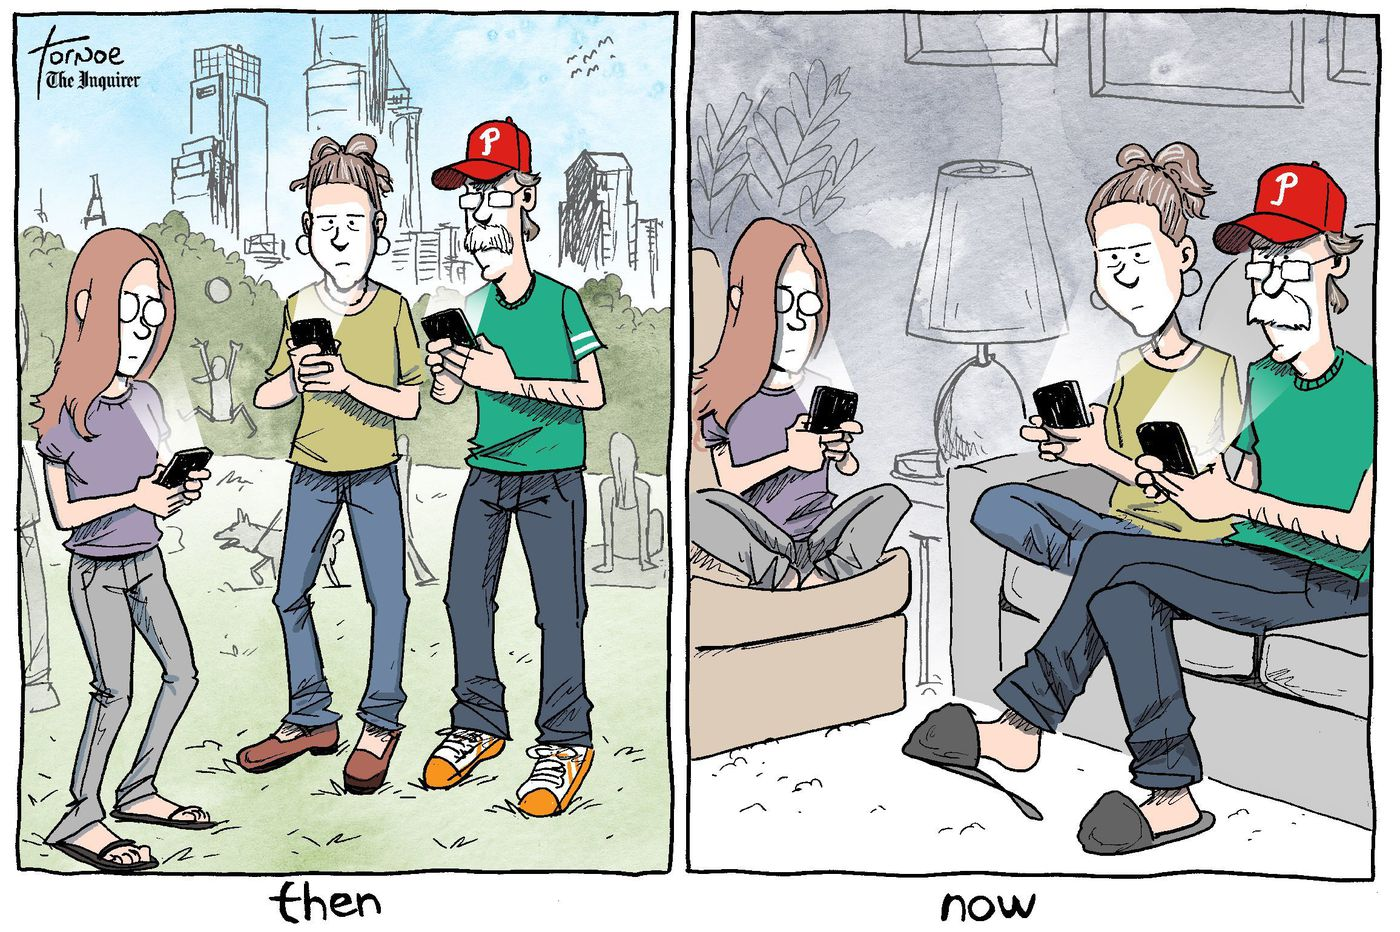 Coronavirus cartoon: We lost the fight against our phones and screens